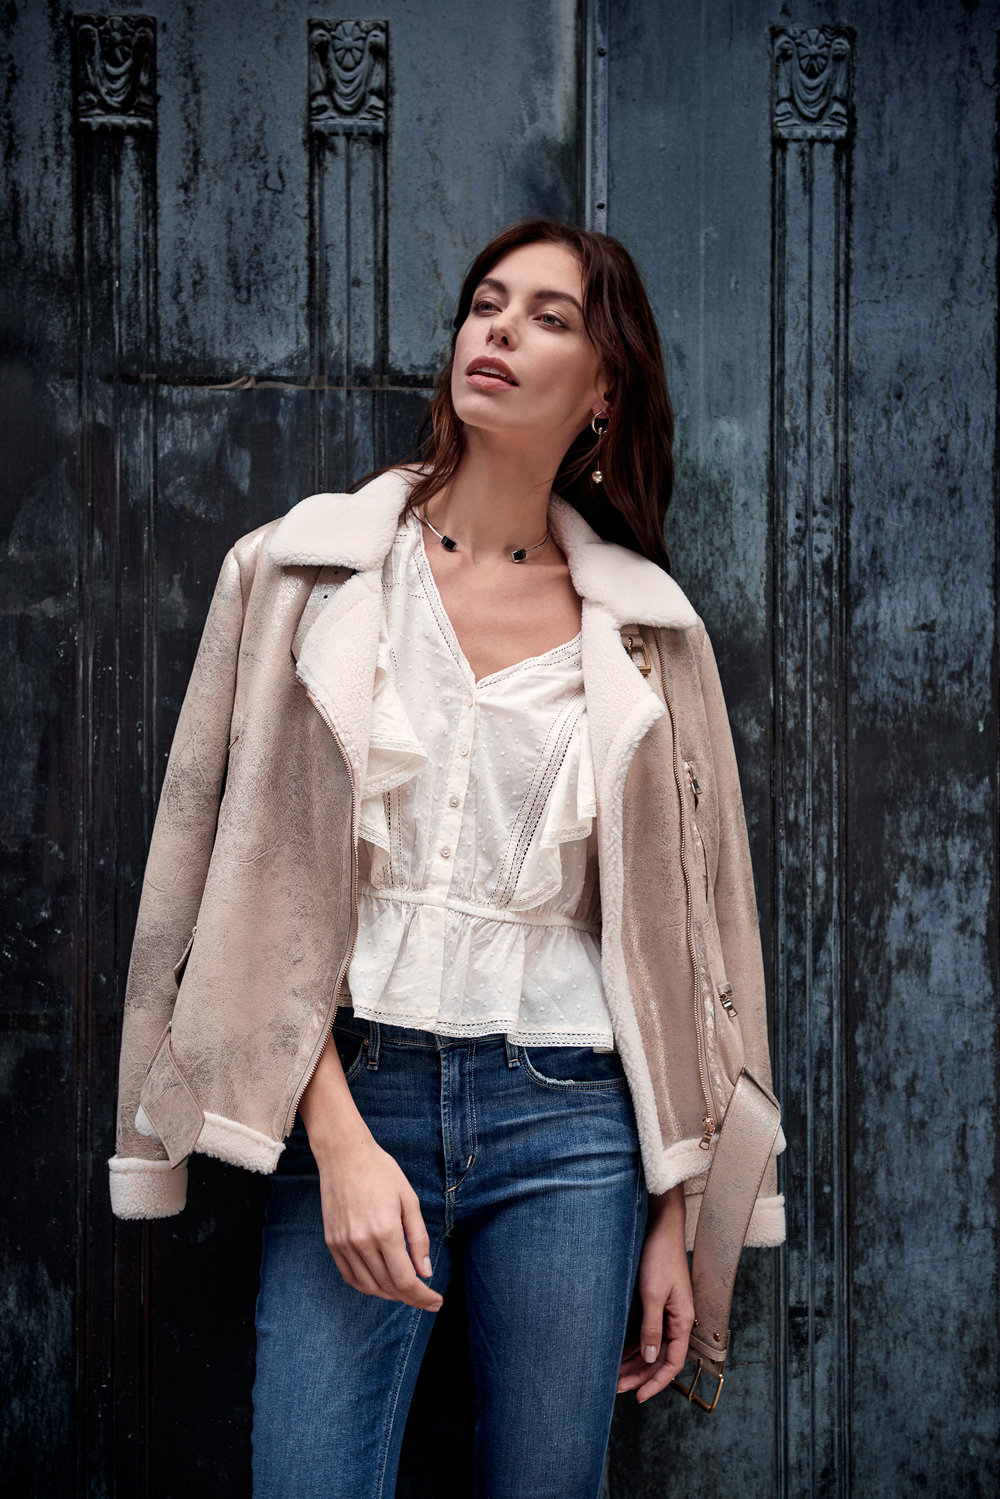 Georgia Metallic Gold Shearling Biker Jacket & They Call Her ONYX Necklace & Livie Ruffle Top - Ivory & Newton Skinny Jeans With Rose Embroidery